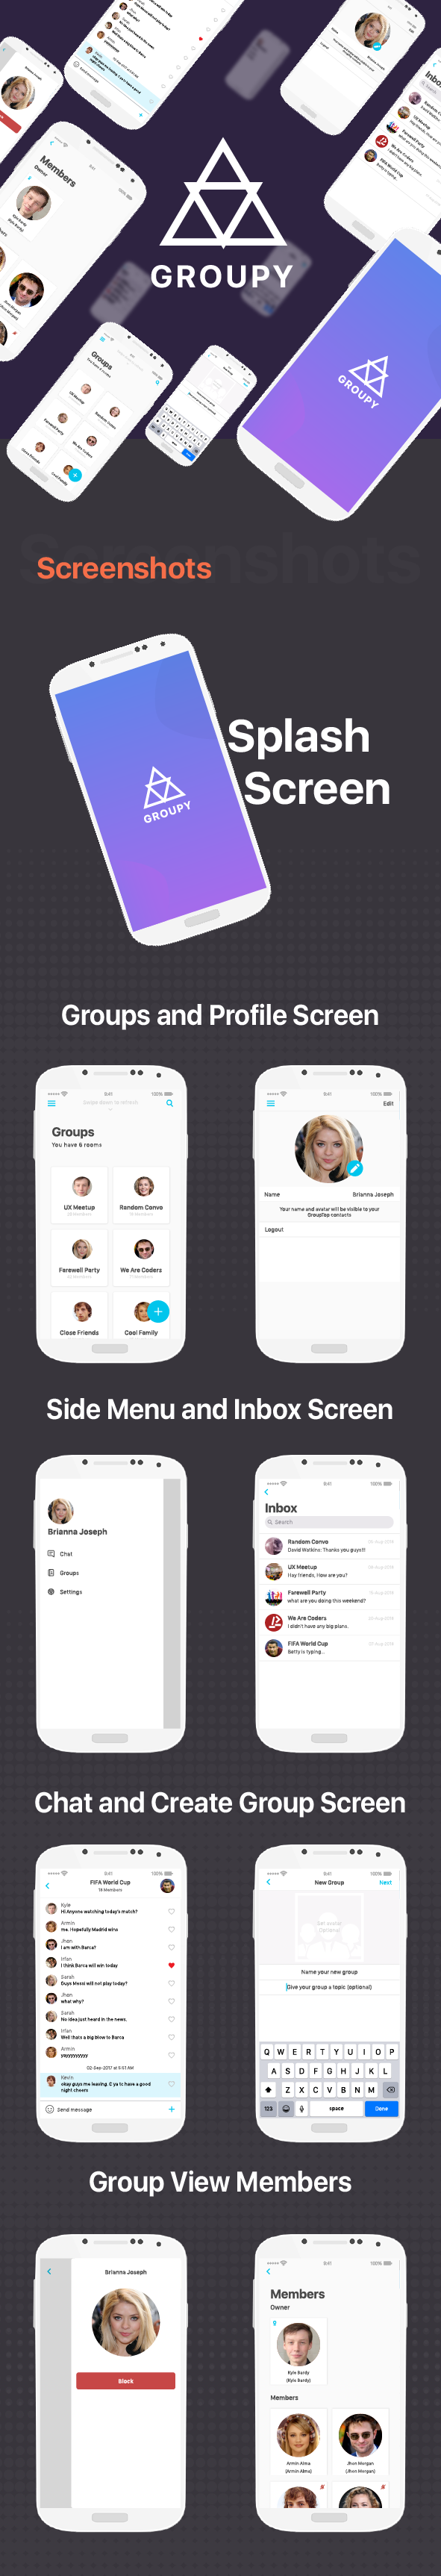 Groupy - Group Chat Messenger App like GroupMe - 1